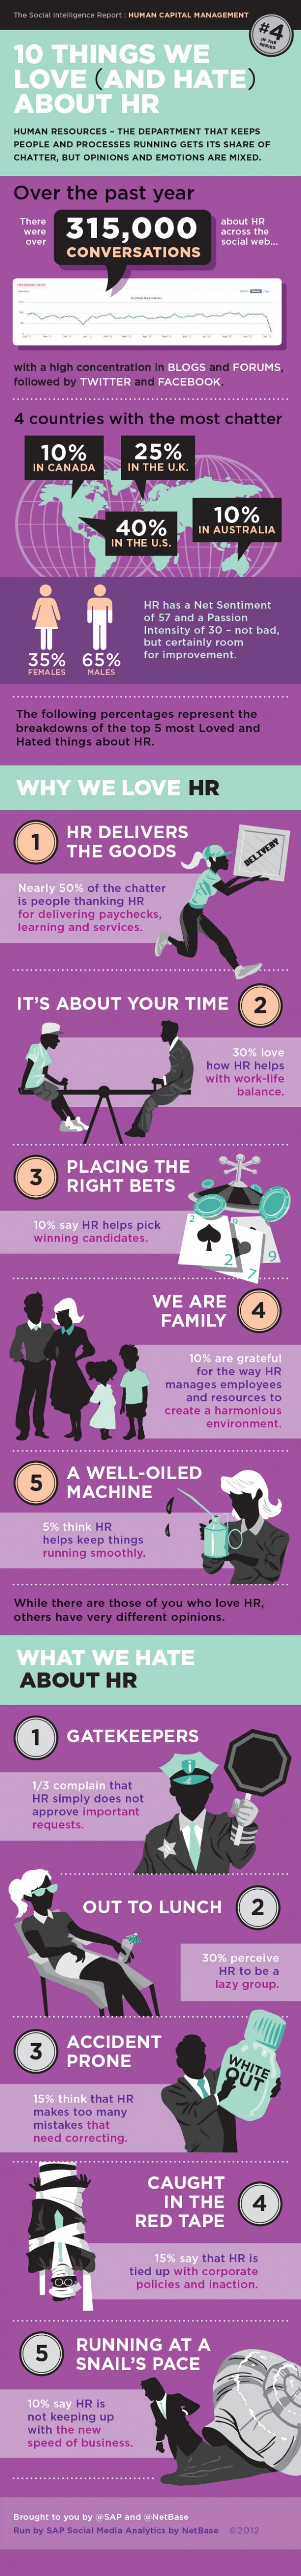 Ten Things We Love and Hate About HR